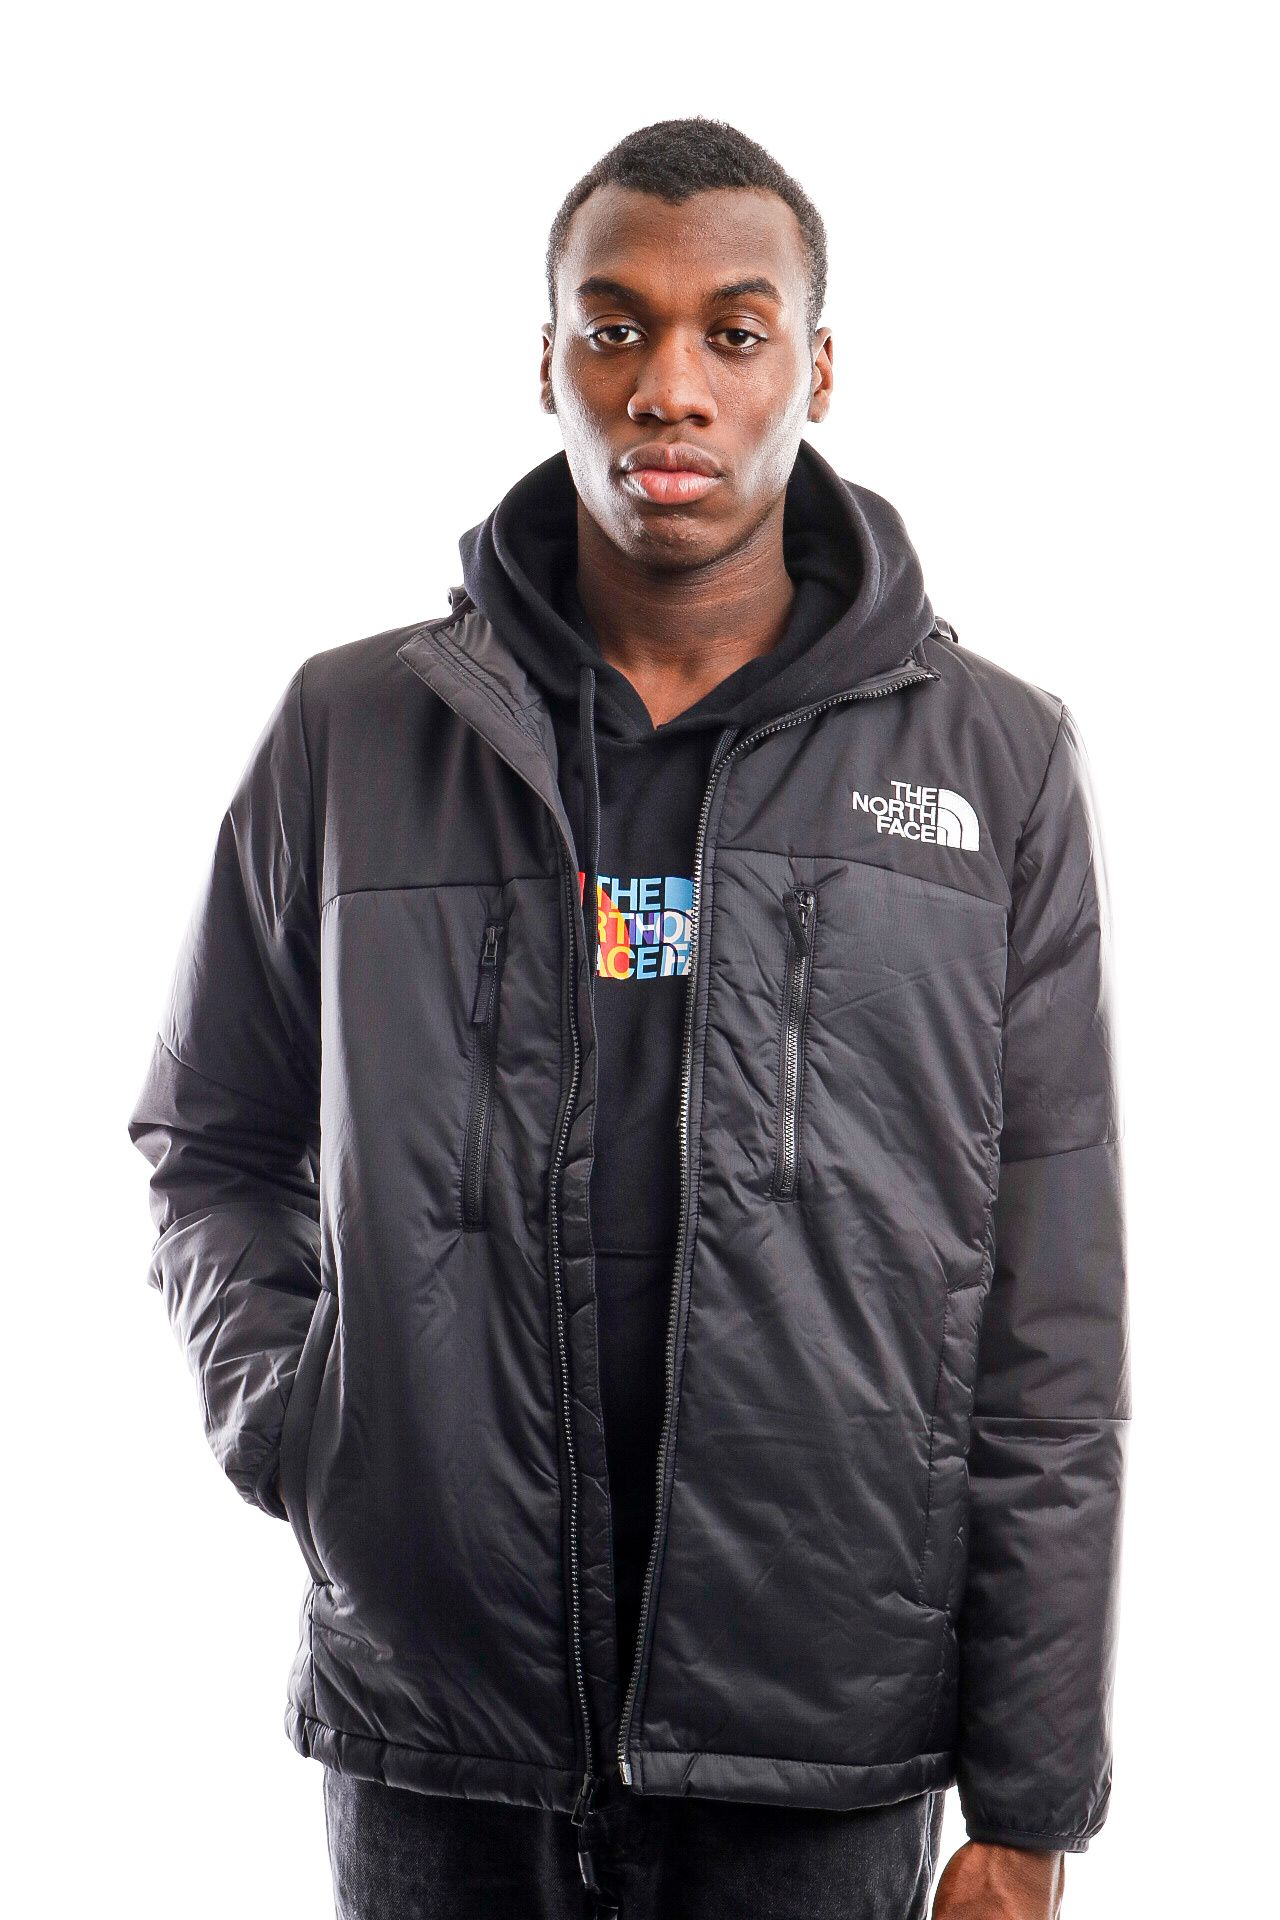 Afbeelding van The North Face Jacket Men's Himalayan Light Synth Hoodie Tnf Black NF0A3L2GJK31